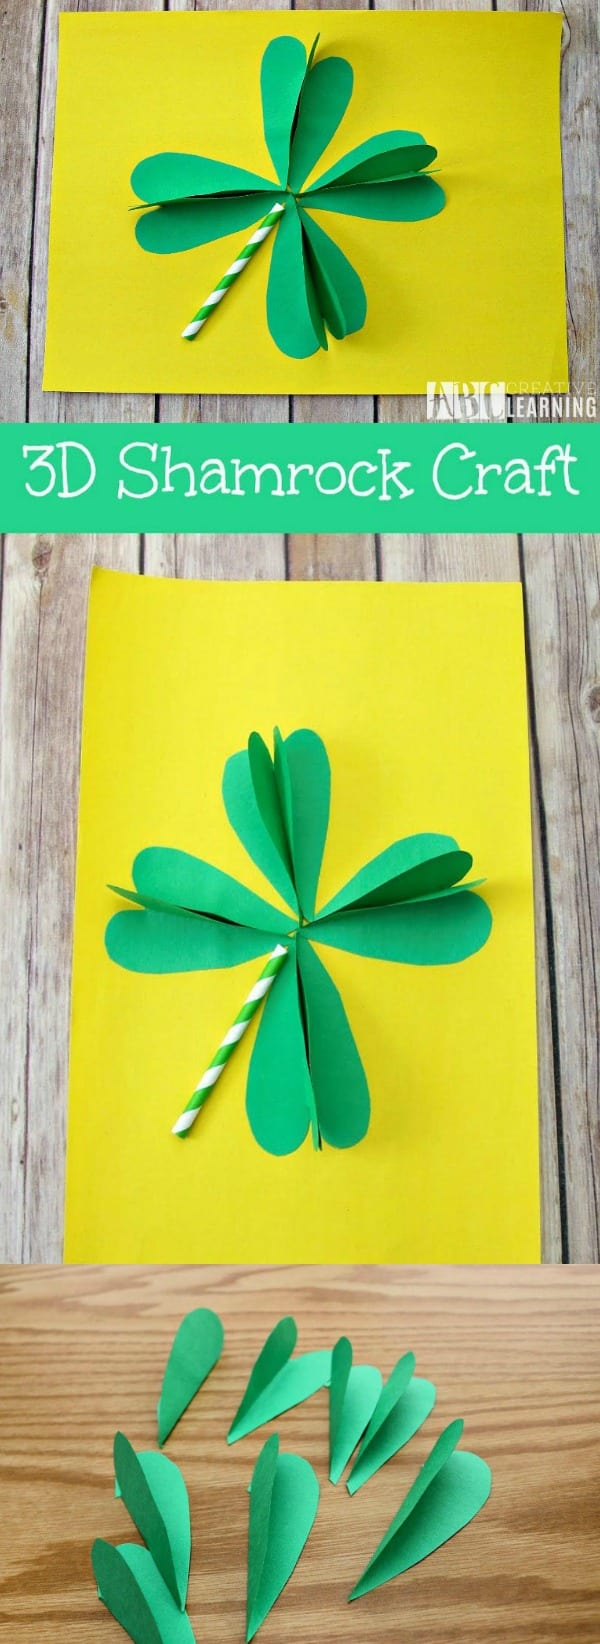 Shamrock 3D Craft